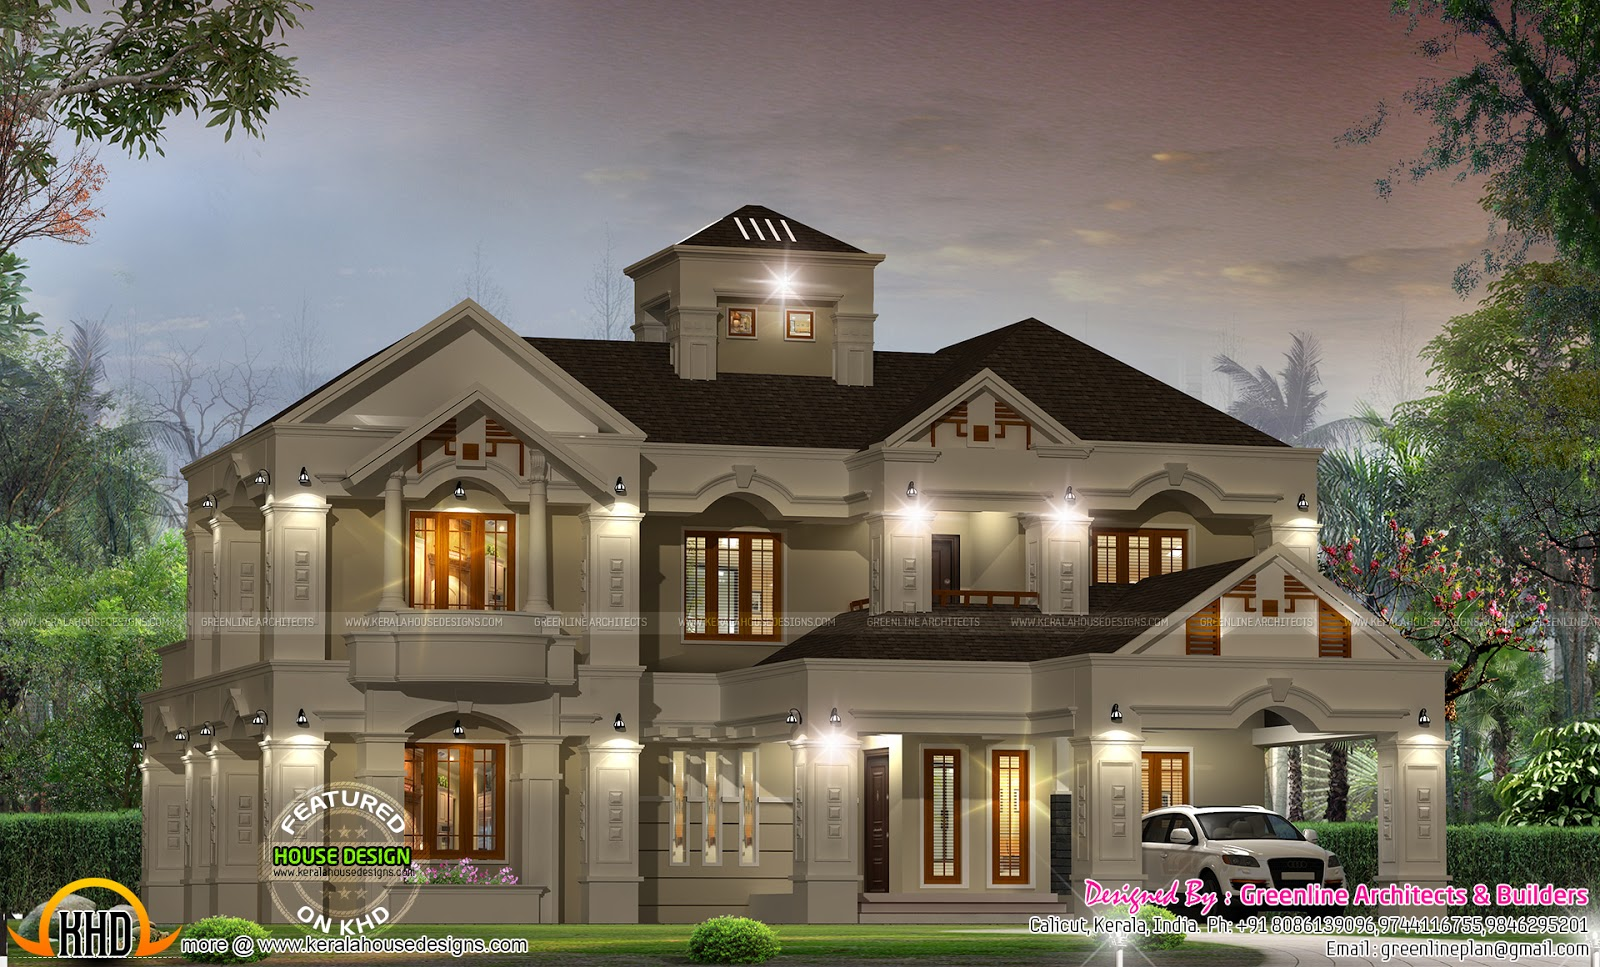 Luxury villa design in kerala kerala home design and for Villa style homes